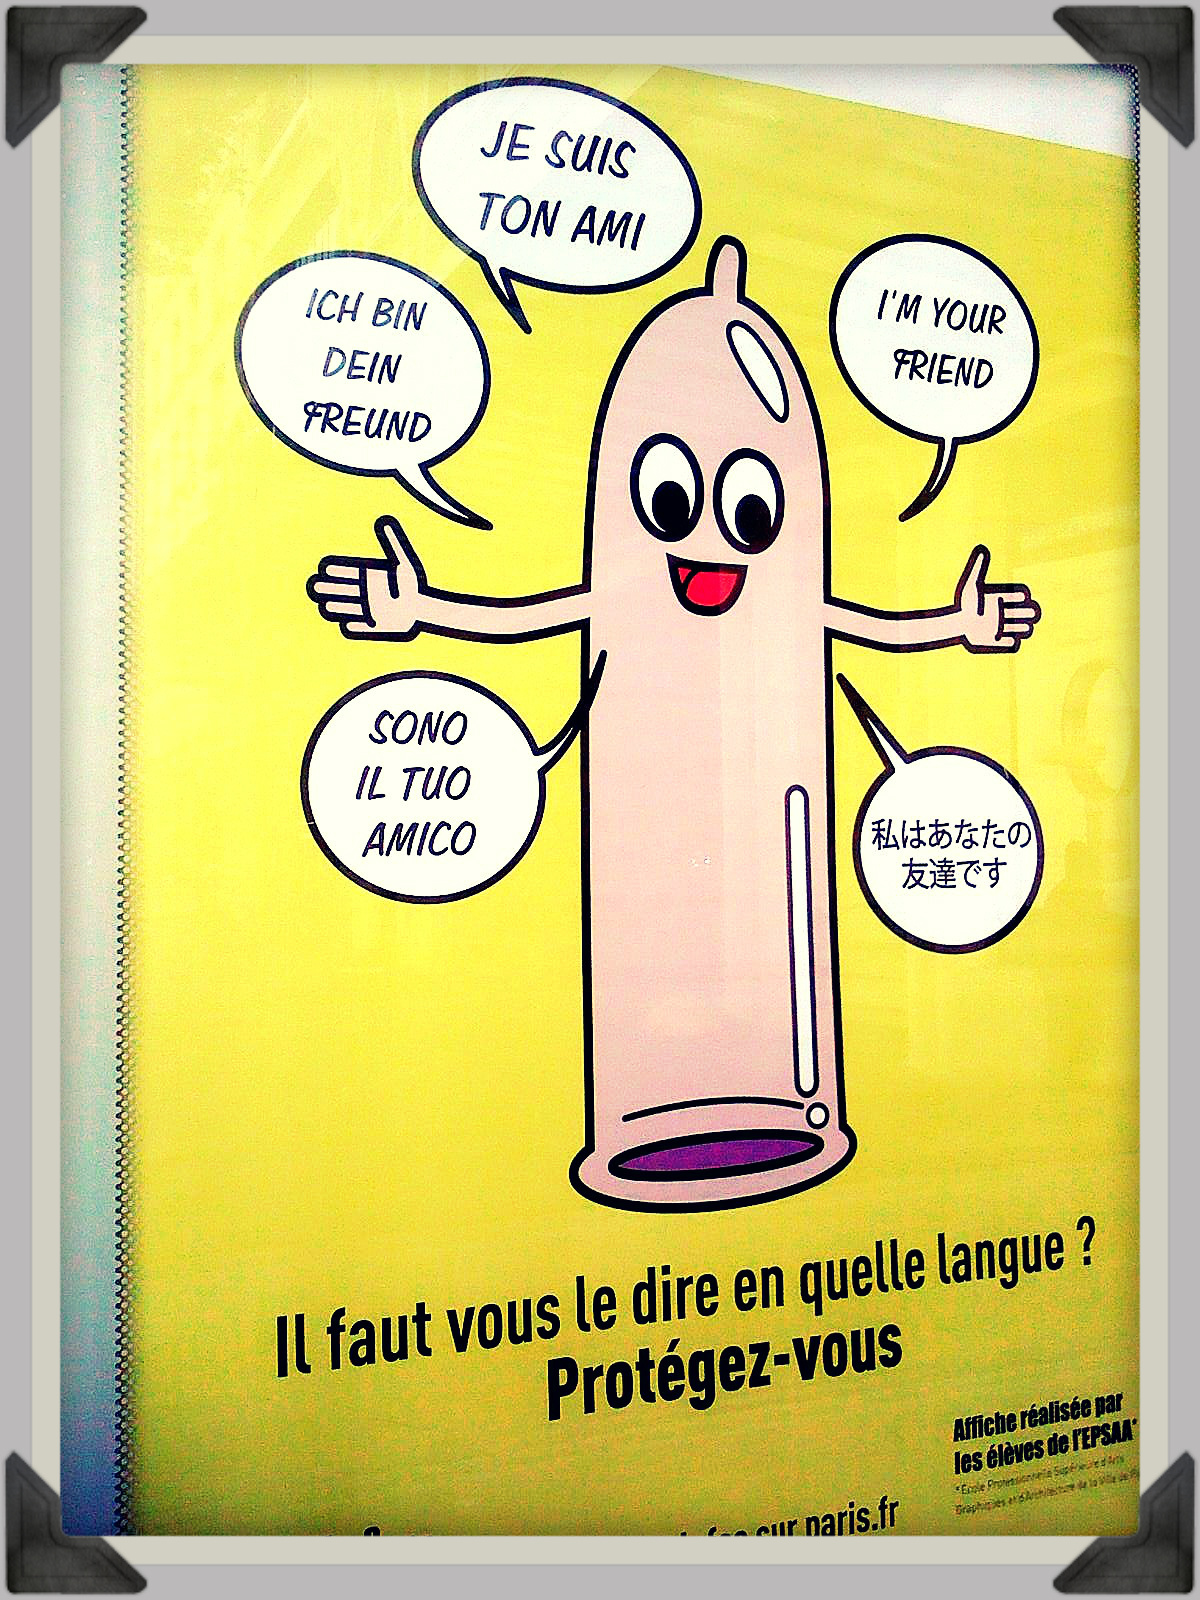 Shake Hands WIth Your Condom (Public Service Announcement, Paris, France)